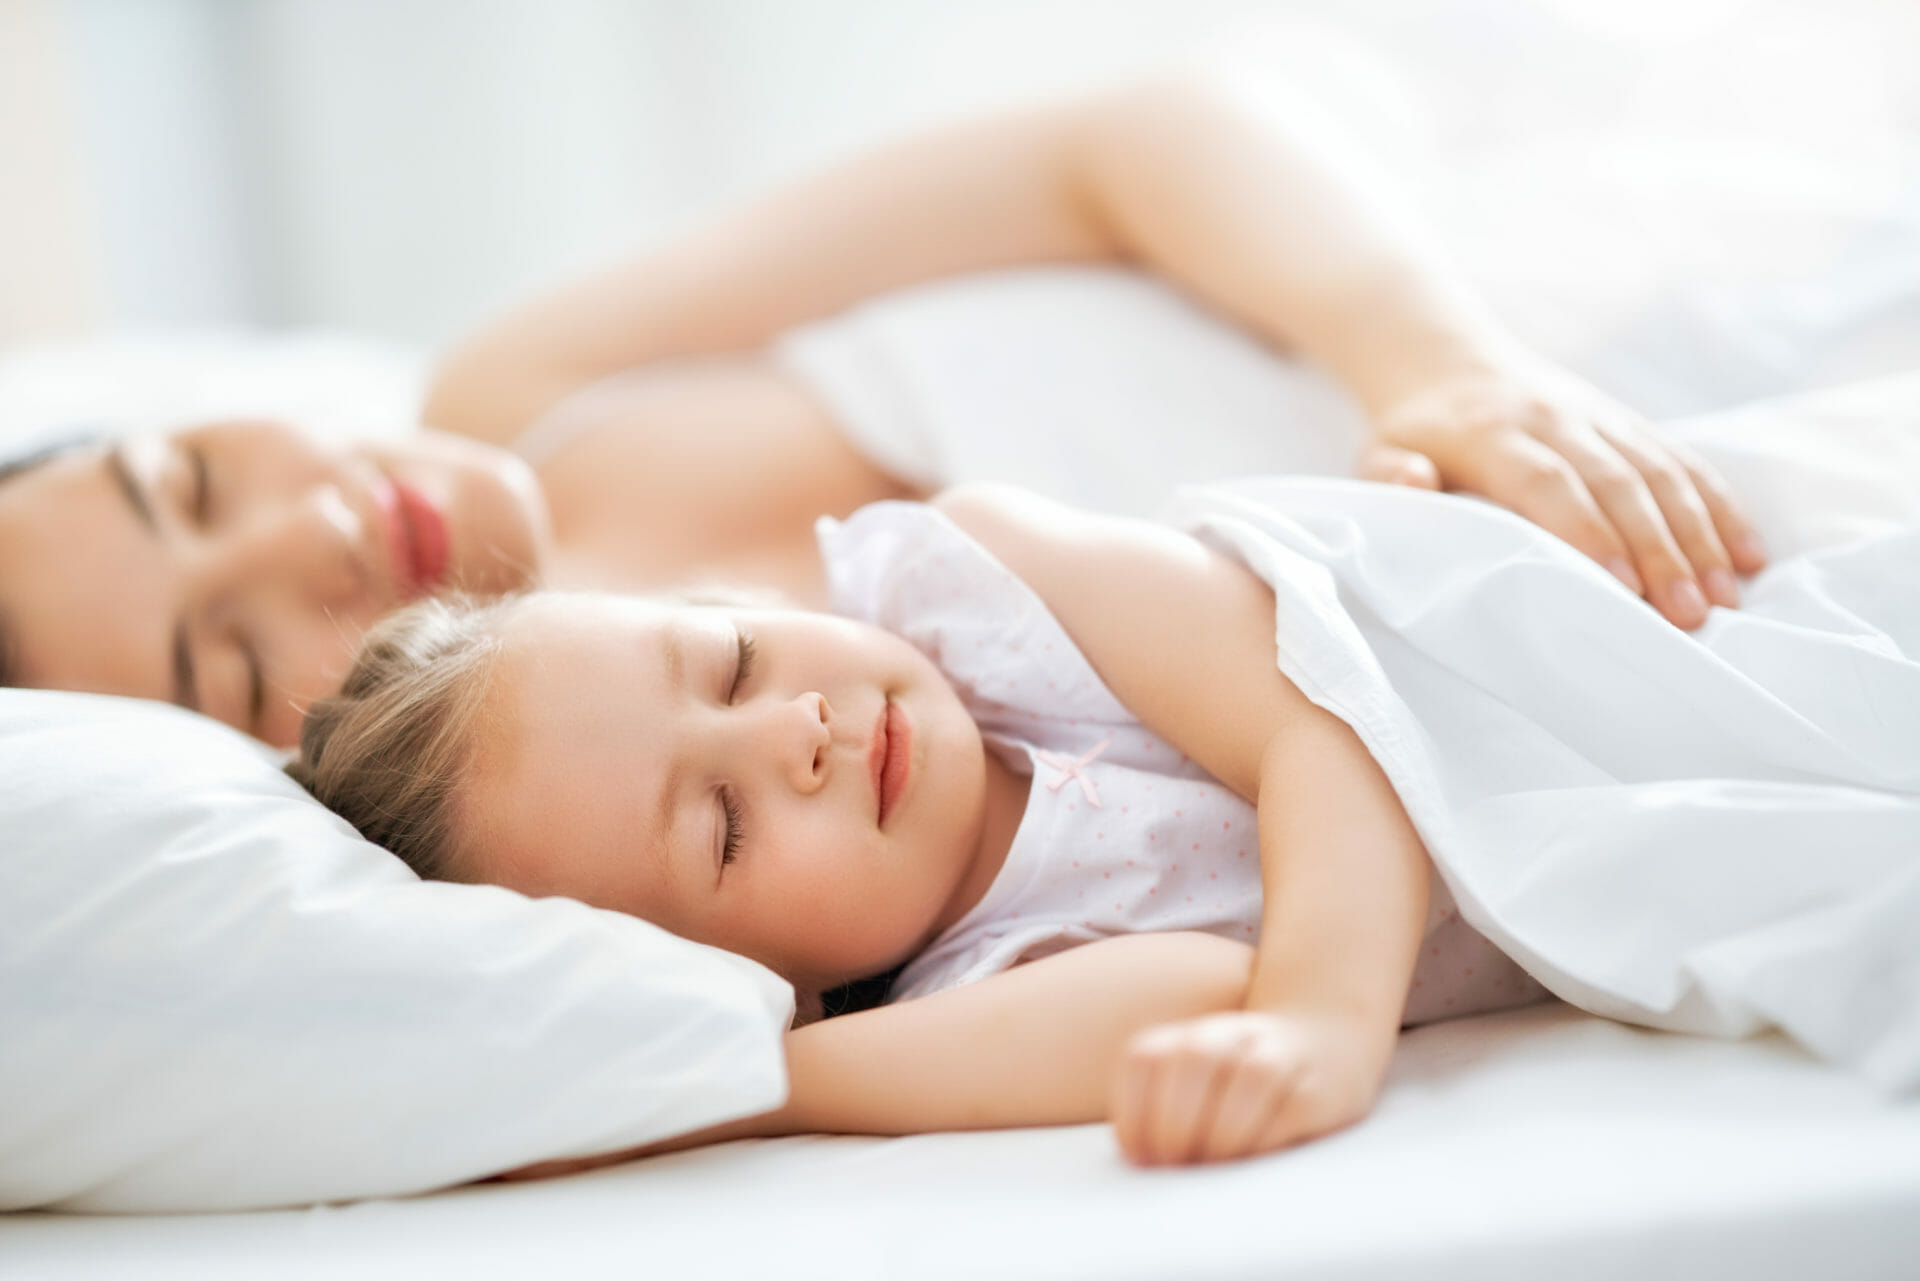 Woman sharing a bed with toddler